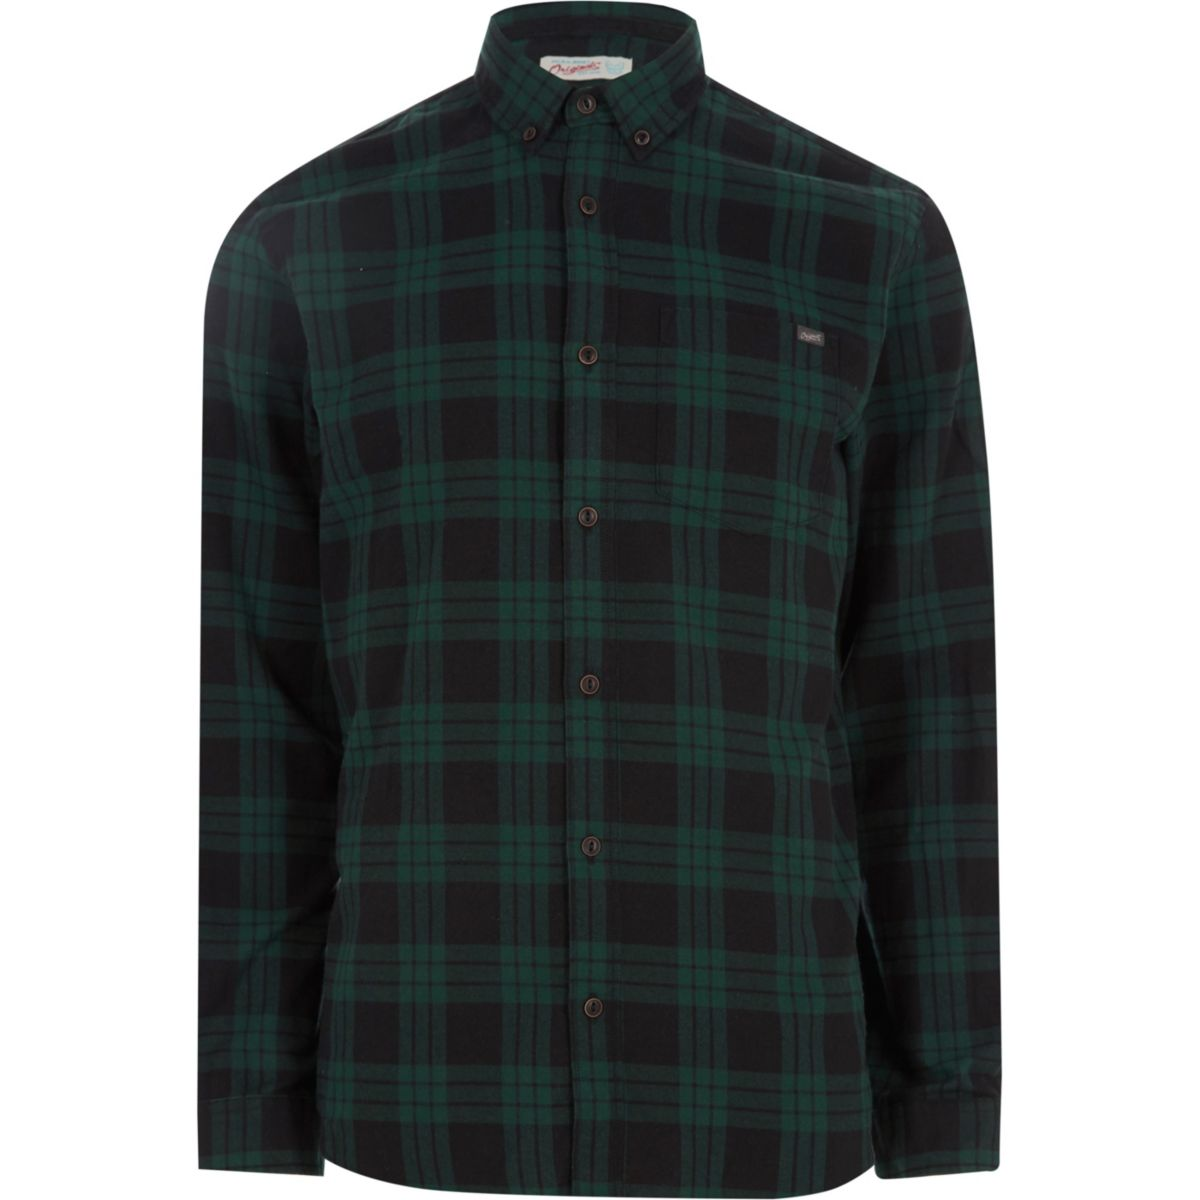 Jack & Jones Originals green check shirt